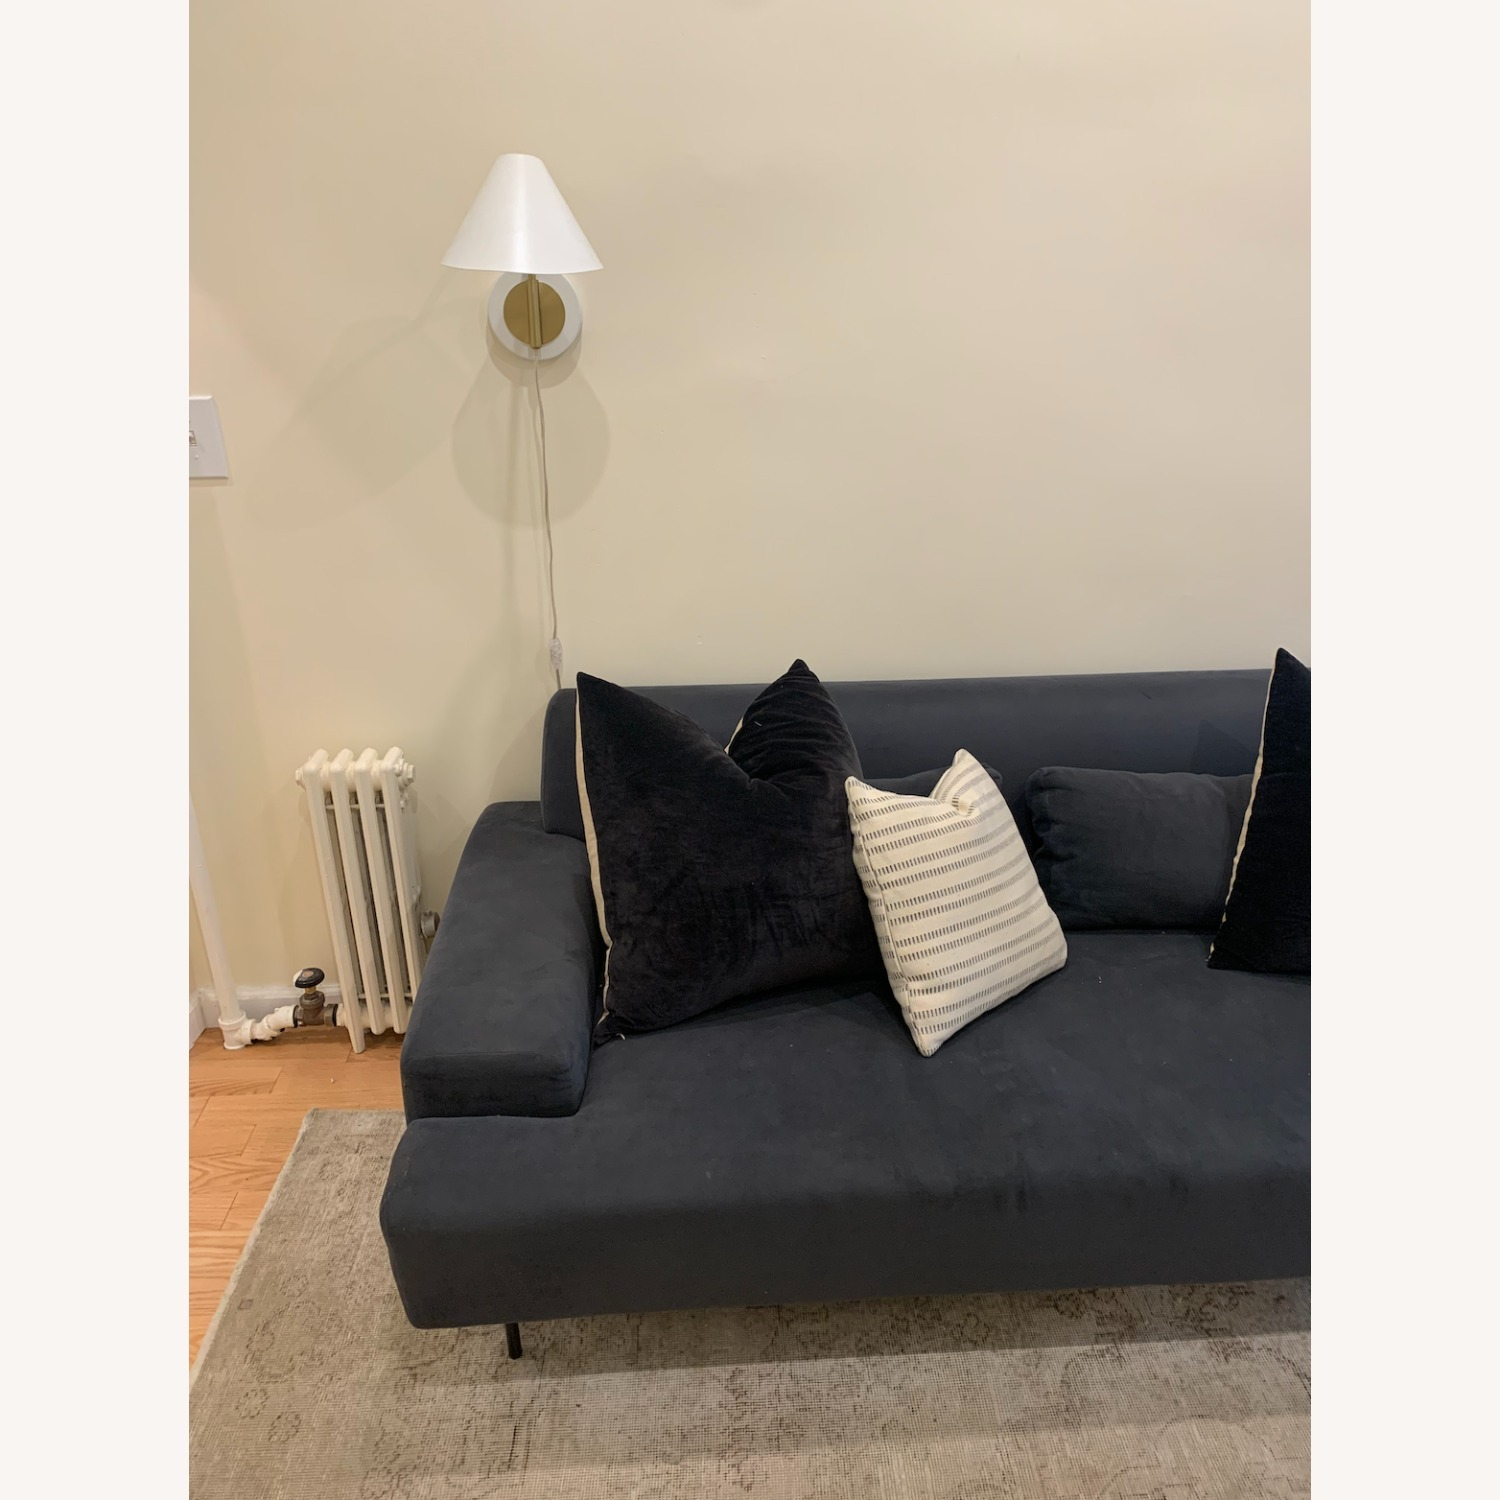 West Elm Beckham Sofa in Midnight Velvet - image-3